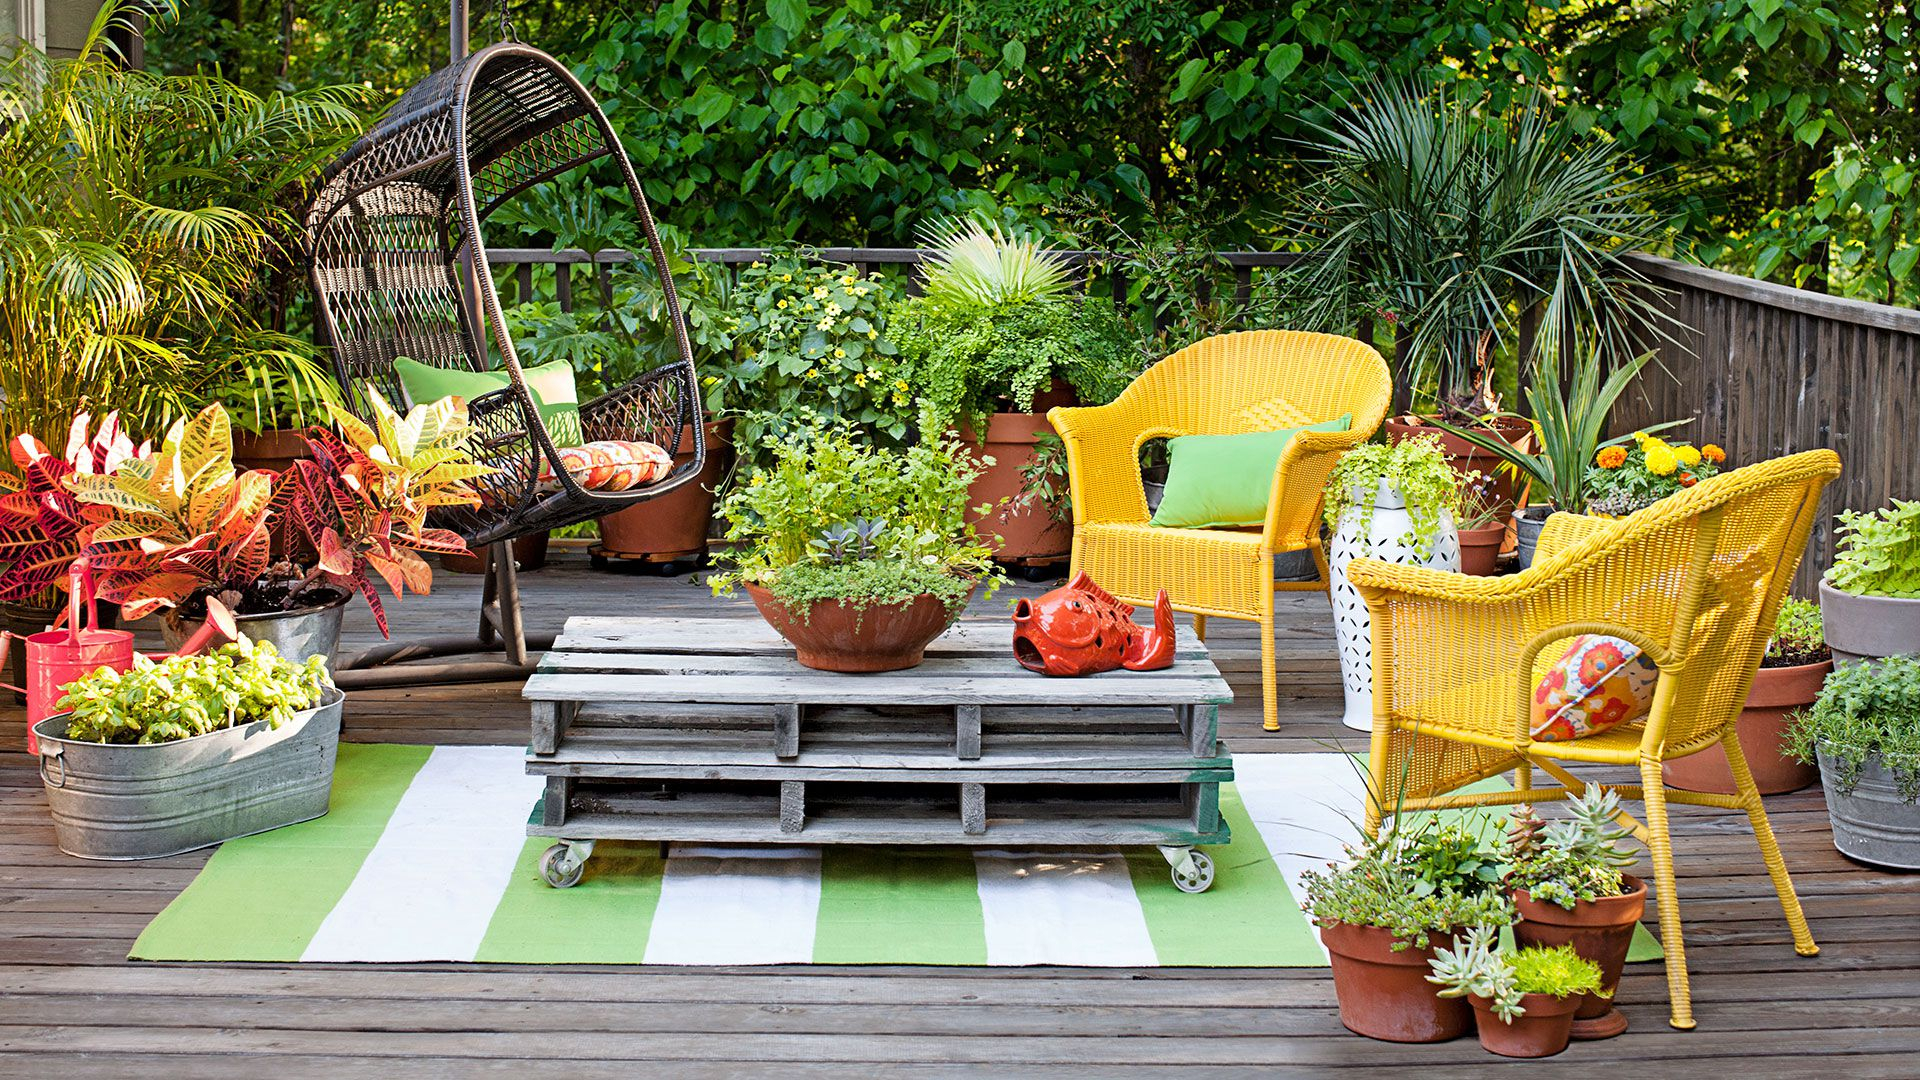 25 Backyard Decorating Ideas Easy Gardening Tips And Diy Projects pertaining to 15 Smart Ways How to Improve Diy Backyard Decorating Ideas